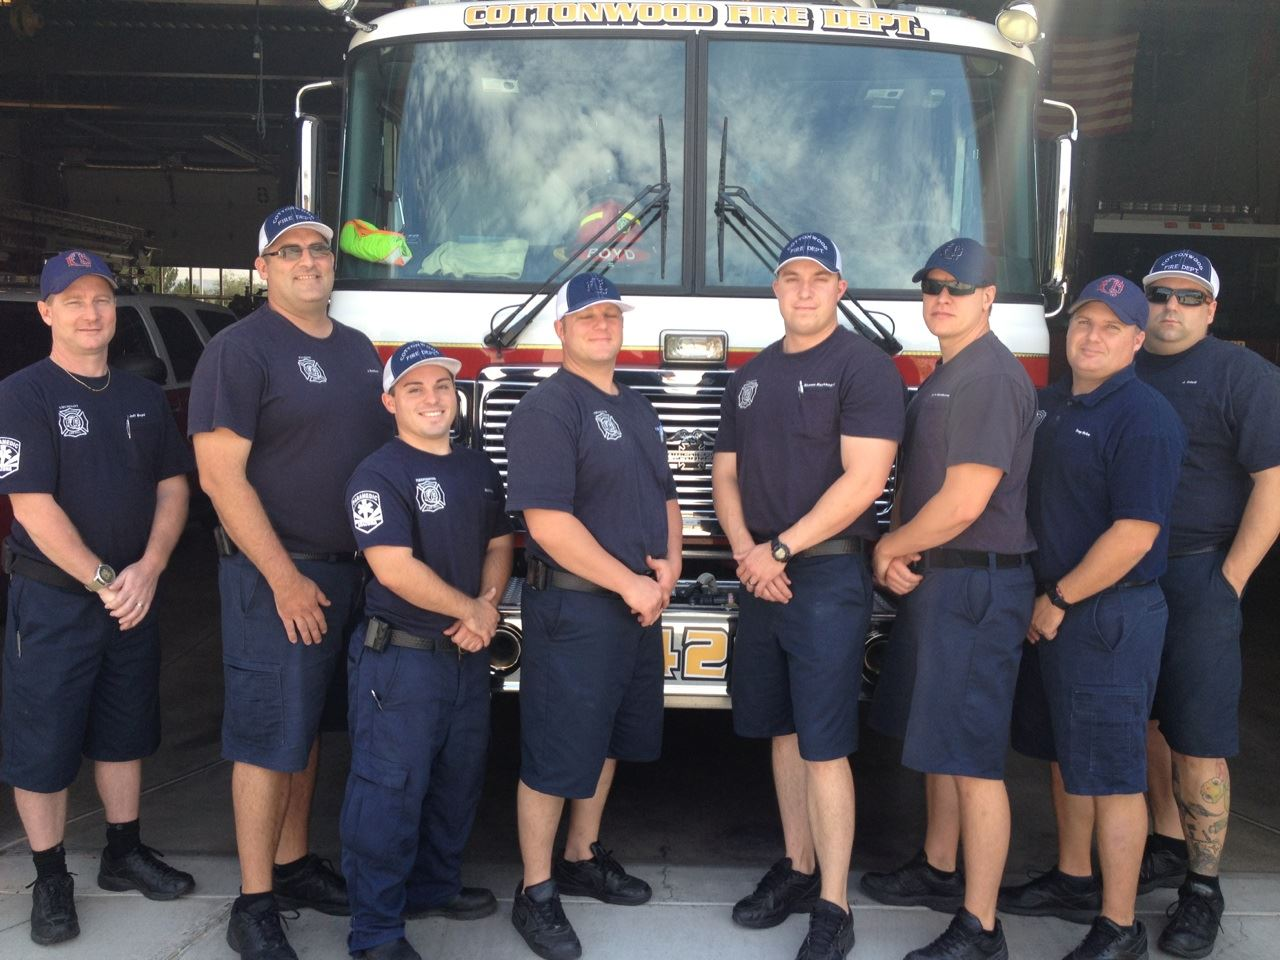 The Staff of the Fire Department A Shift